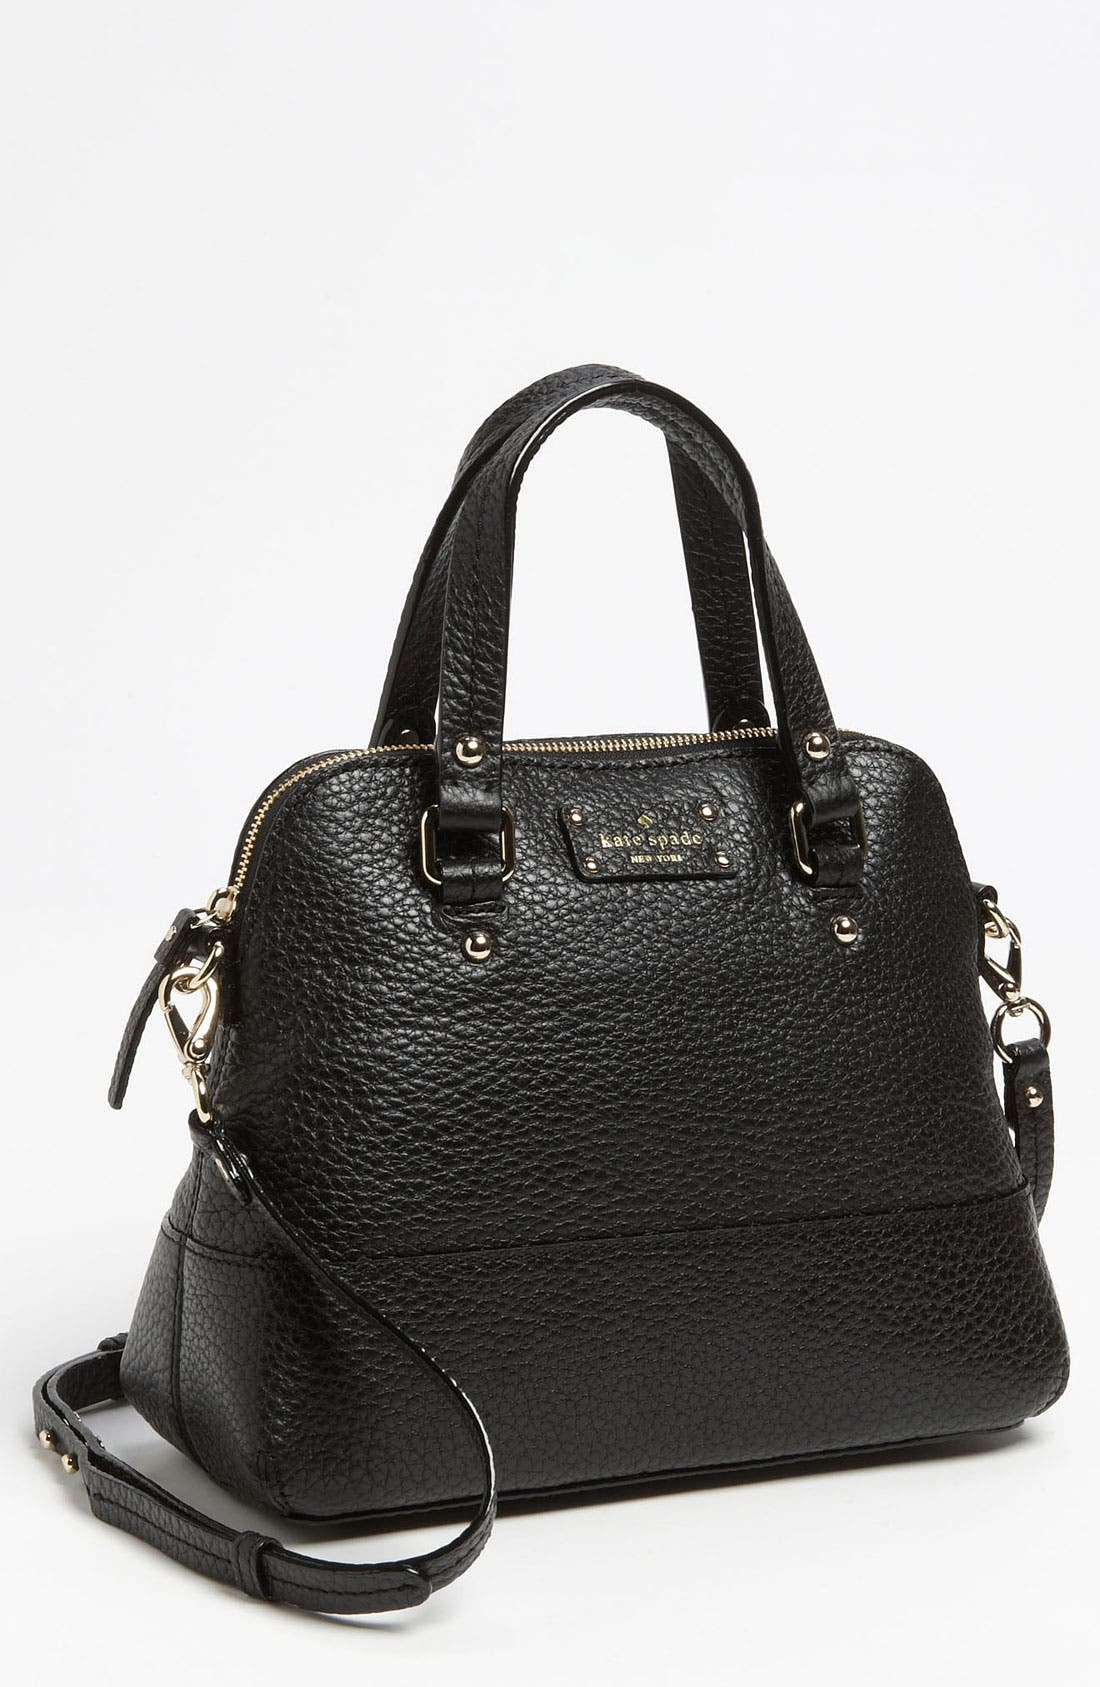 Main Image - kate spade new york 'grove court - maise' satchel